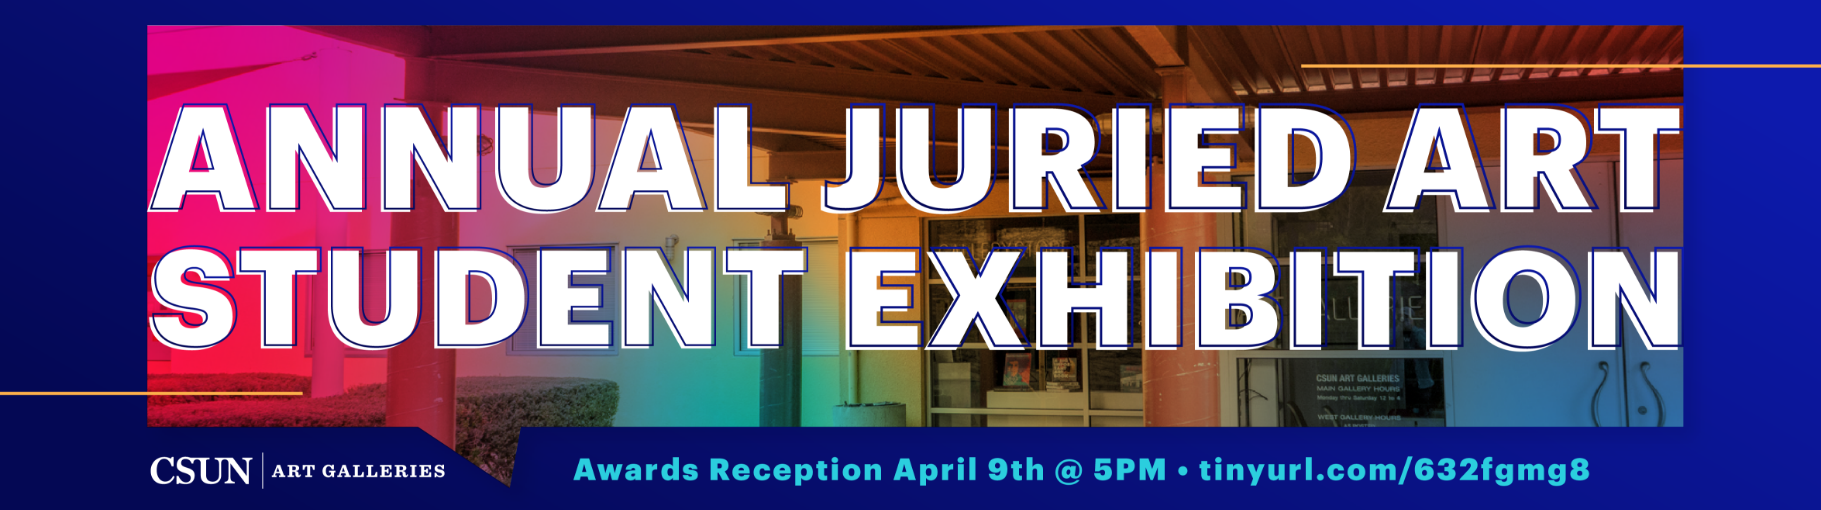 Annual Juried Art Student Exhibition